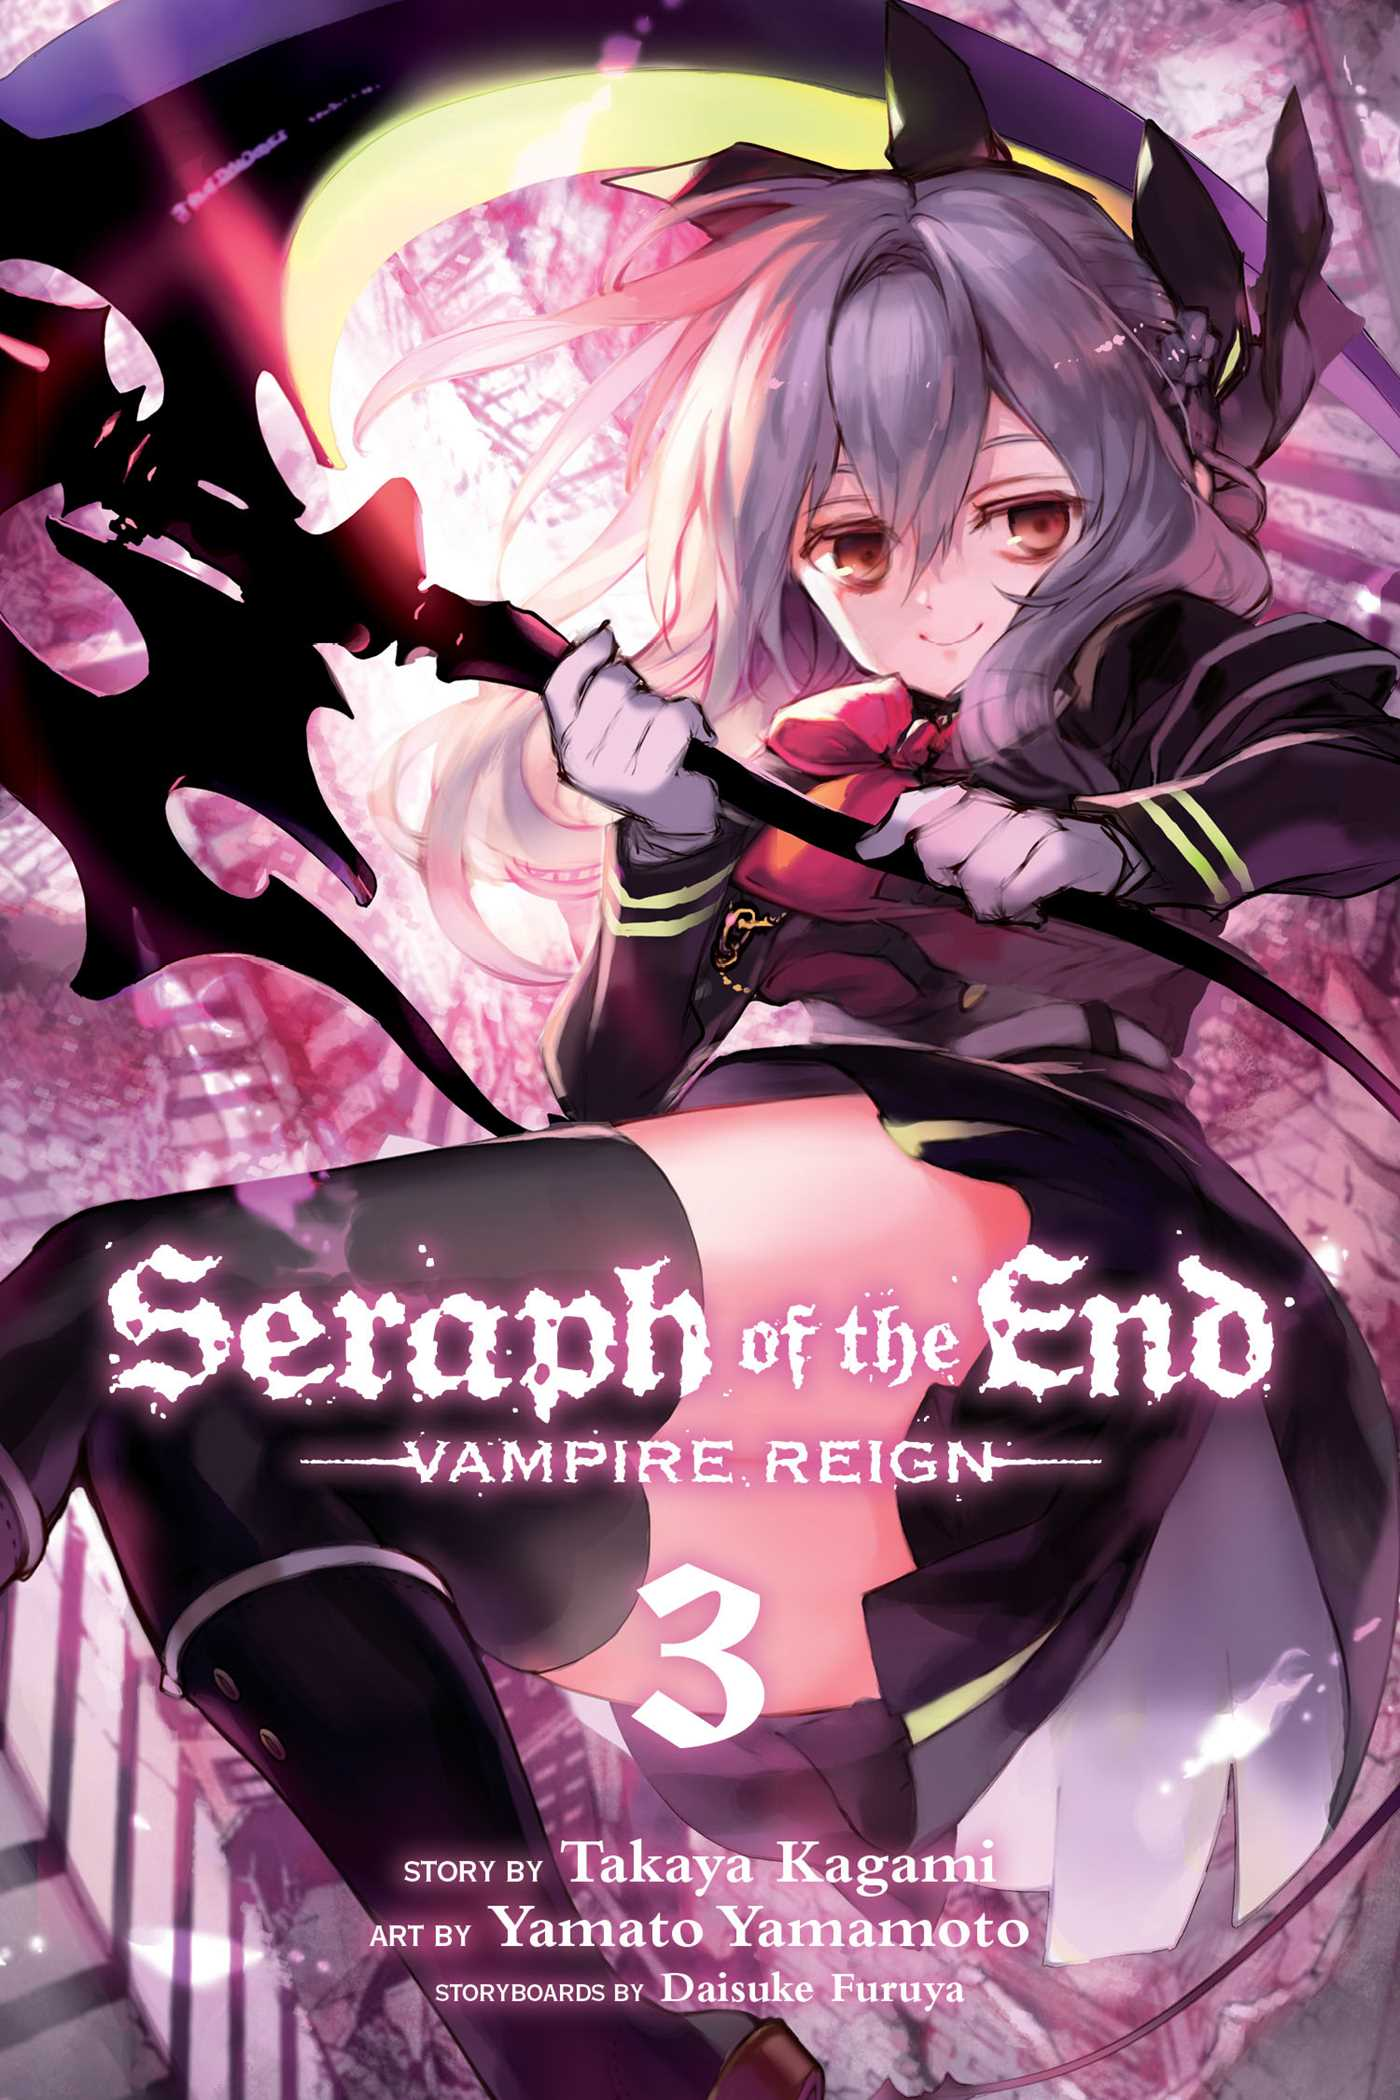 Seraph of the end vol 3 9781421571522 hr